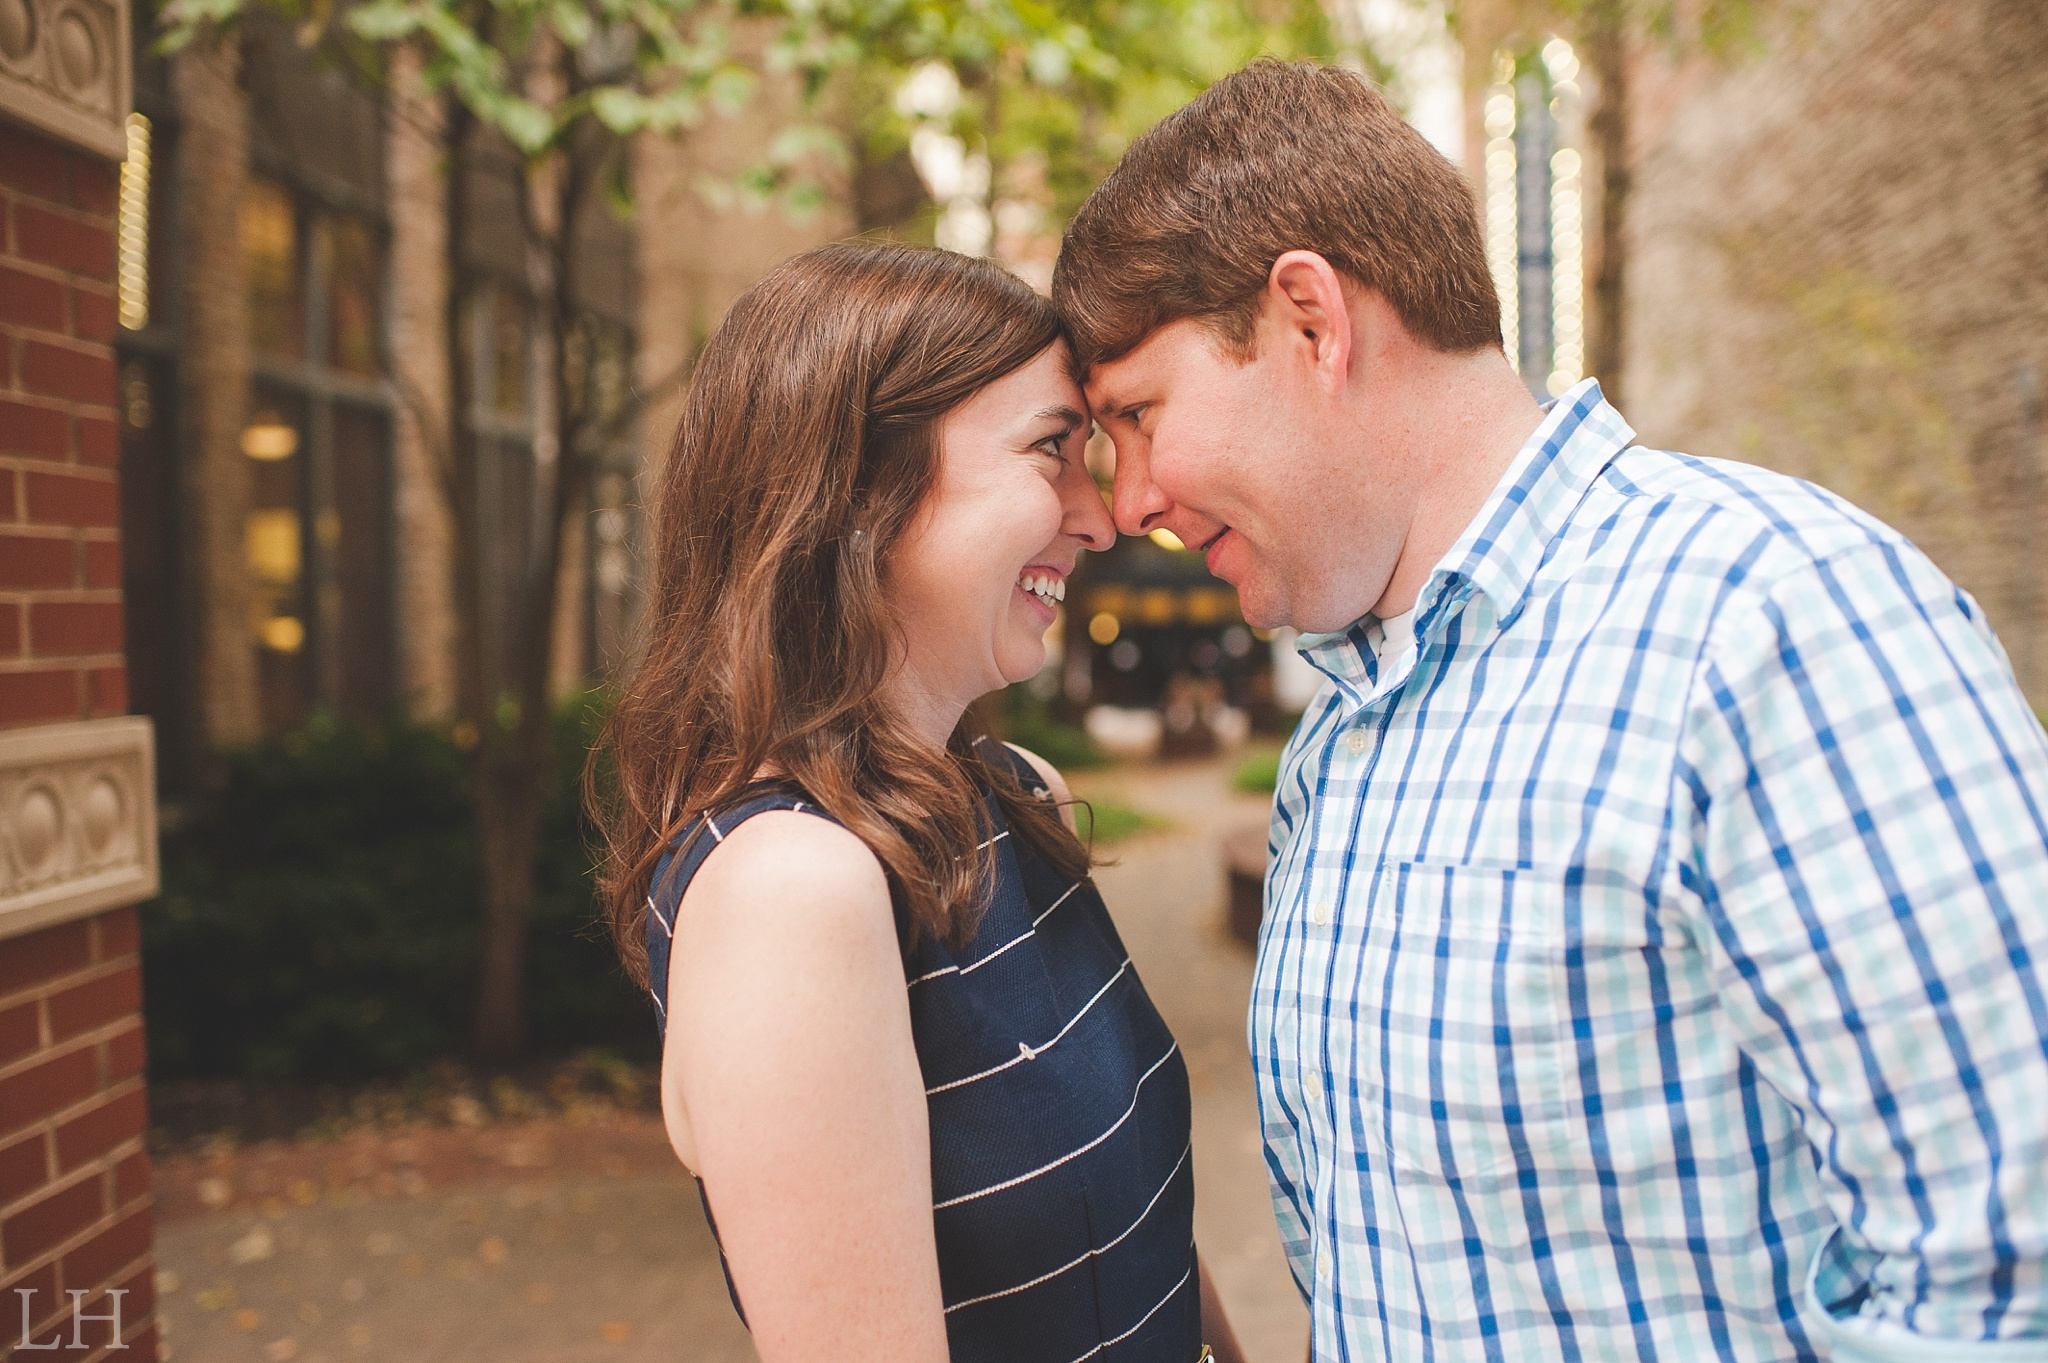 DowntownKnoxvilleEngagementSession126.jpg